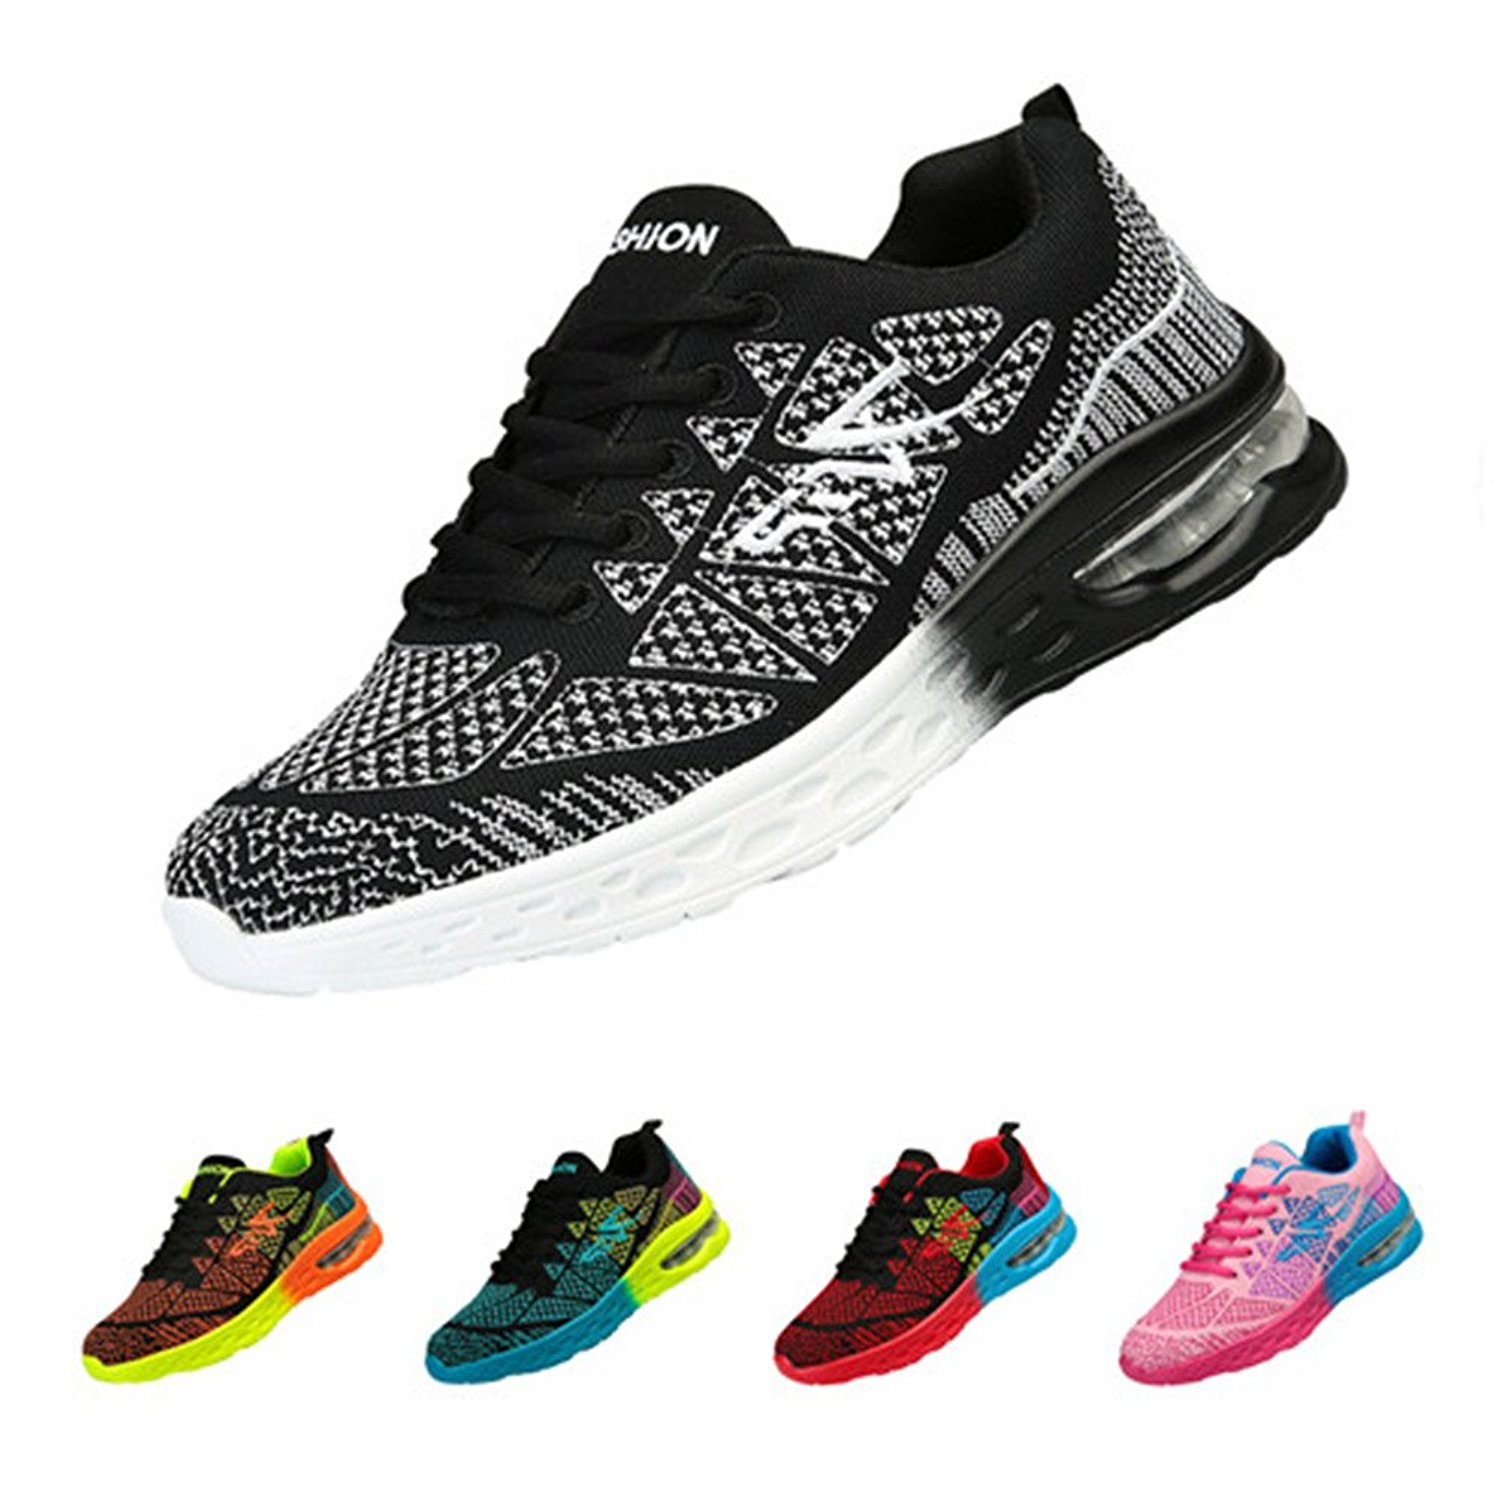 ZIITOP Men and Women Athletic Shoes Running Sneakers Athletic Sneakers Sport Air Fitness Workout Gym Jogging Walking Shoes